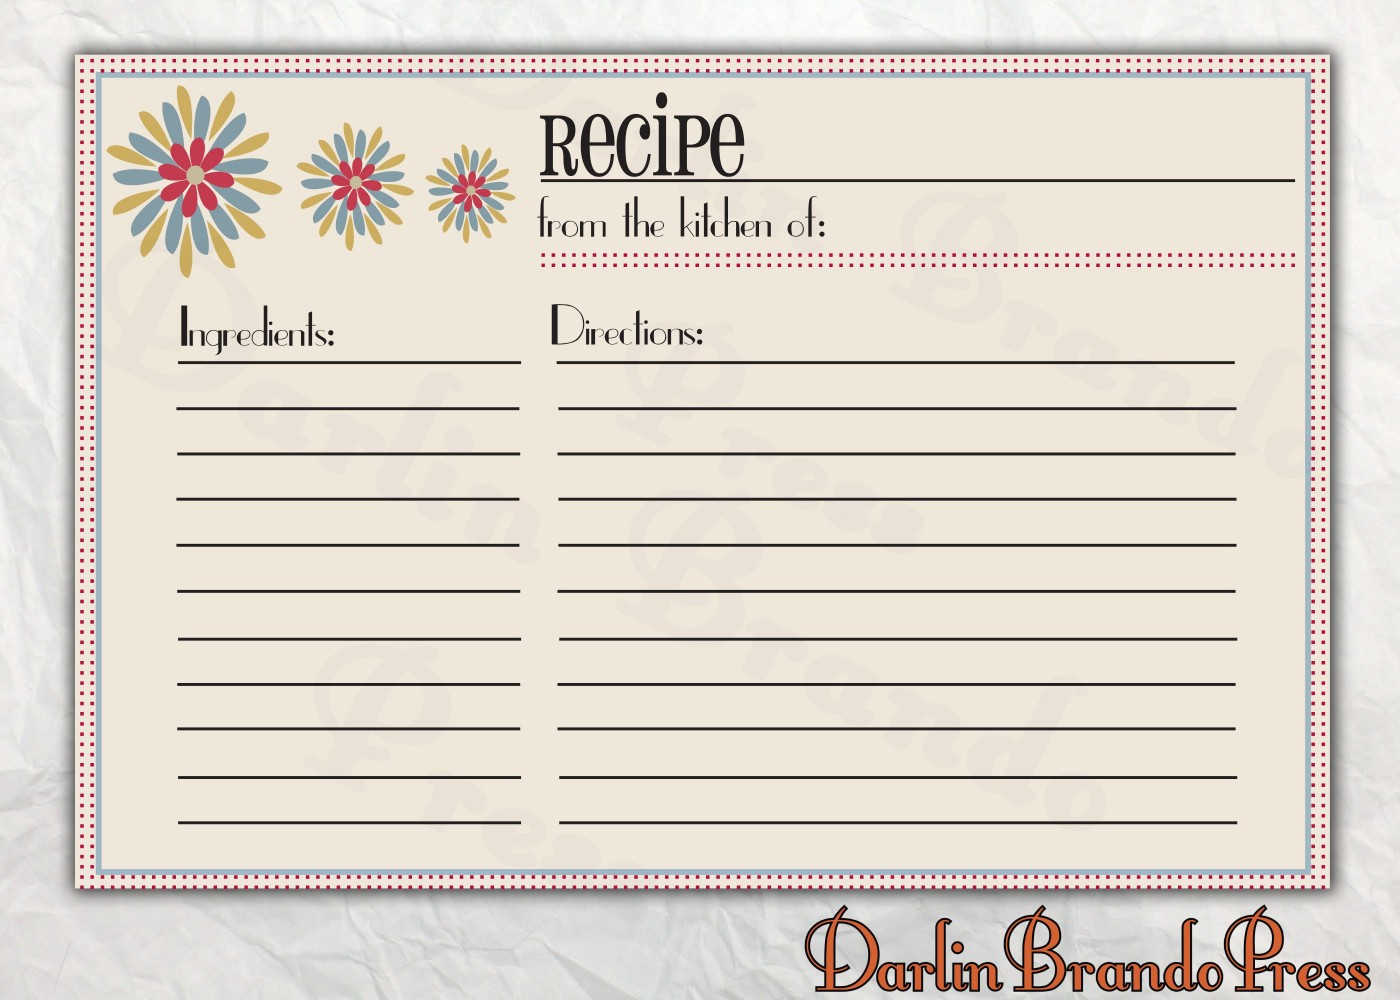 004 Breathtaking Free 4x6 Recipe Card Template For Microsoft Word High Definition  Editable1400